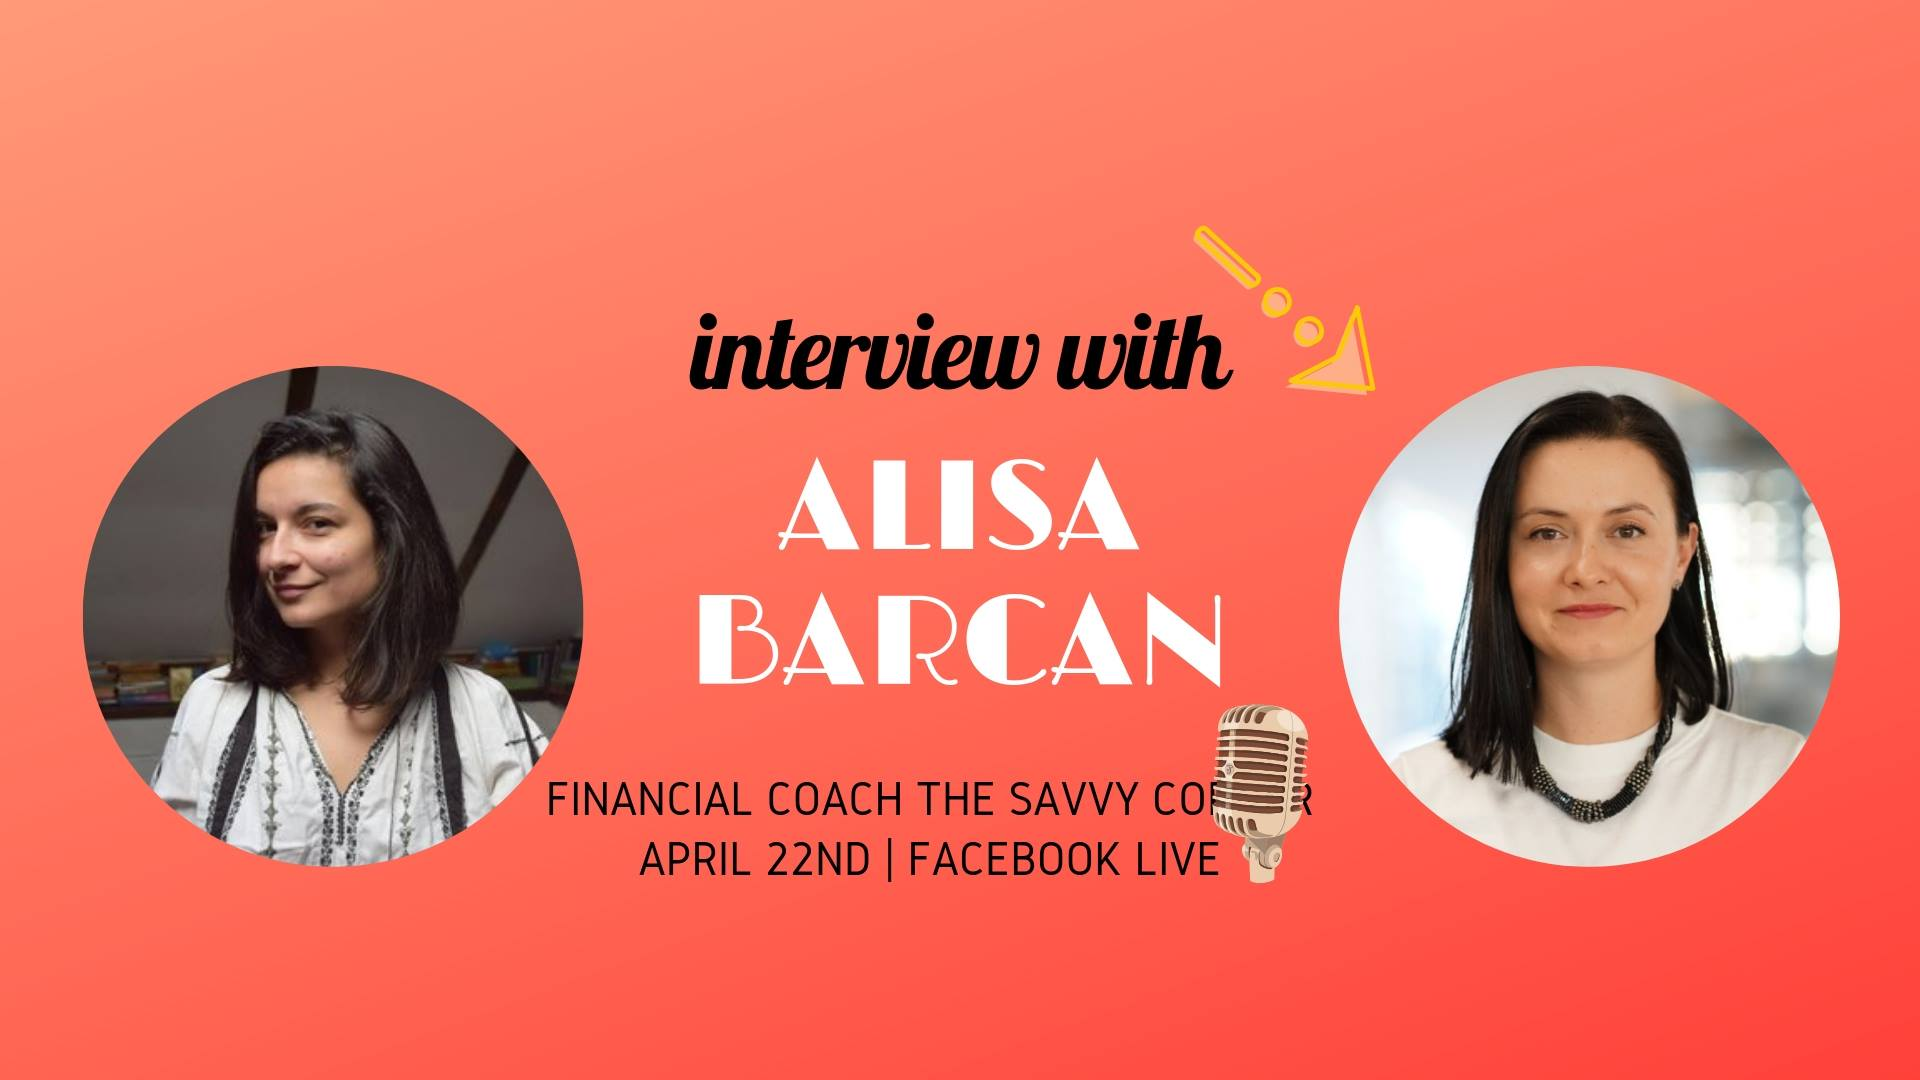 About Financial Abundance, Money Mindset, and Entrepreneurship with Alisa Barcan, Financial Coach -  Click for the interview  #visibilitycoach #interviews #femaleentrepreneurs #girlboss #abundance #moneymindset #money